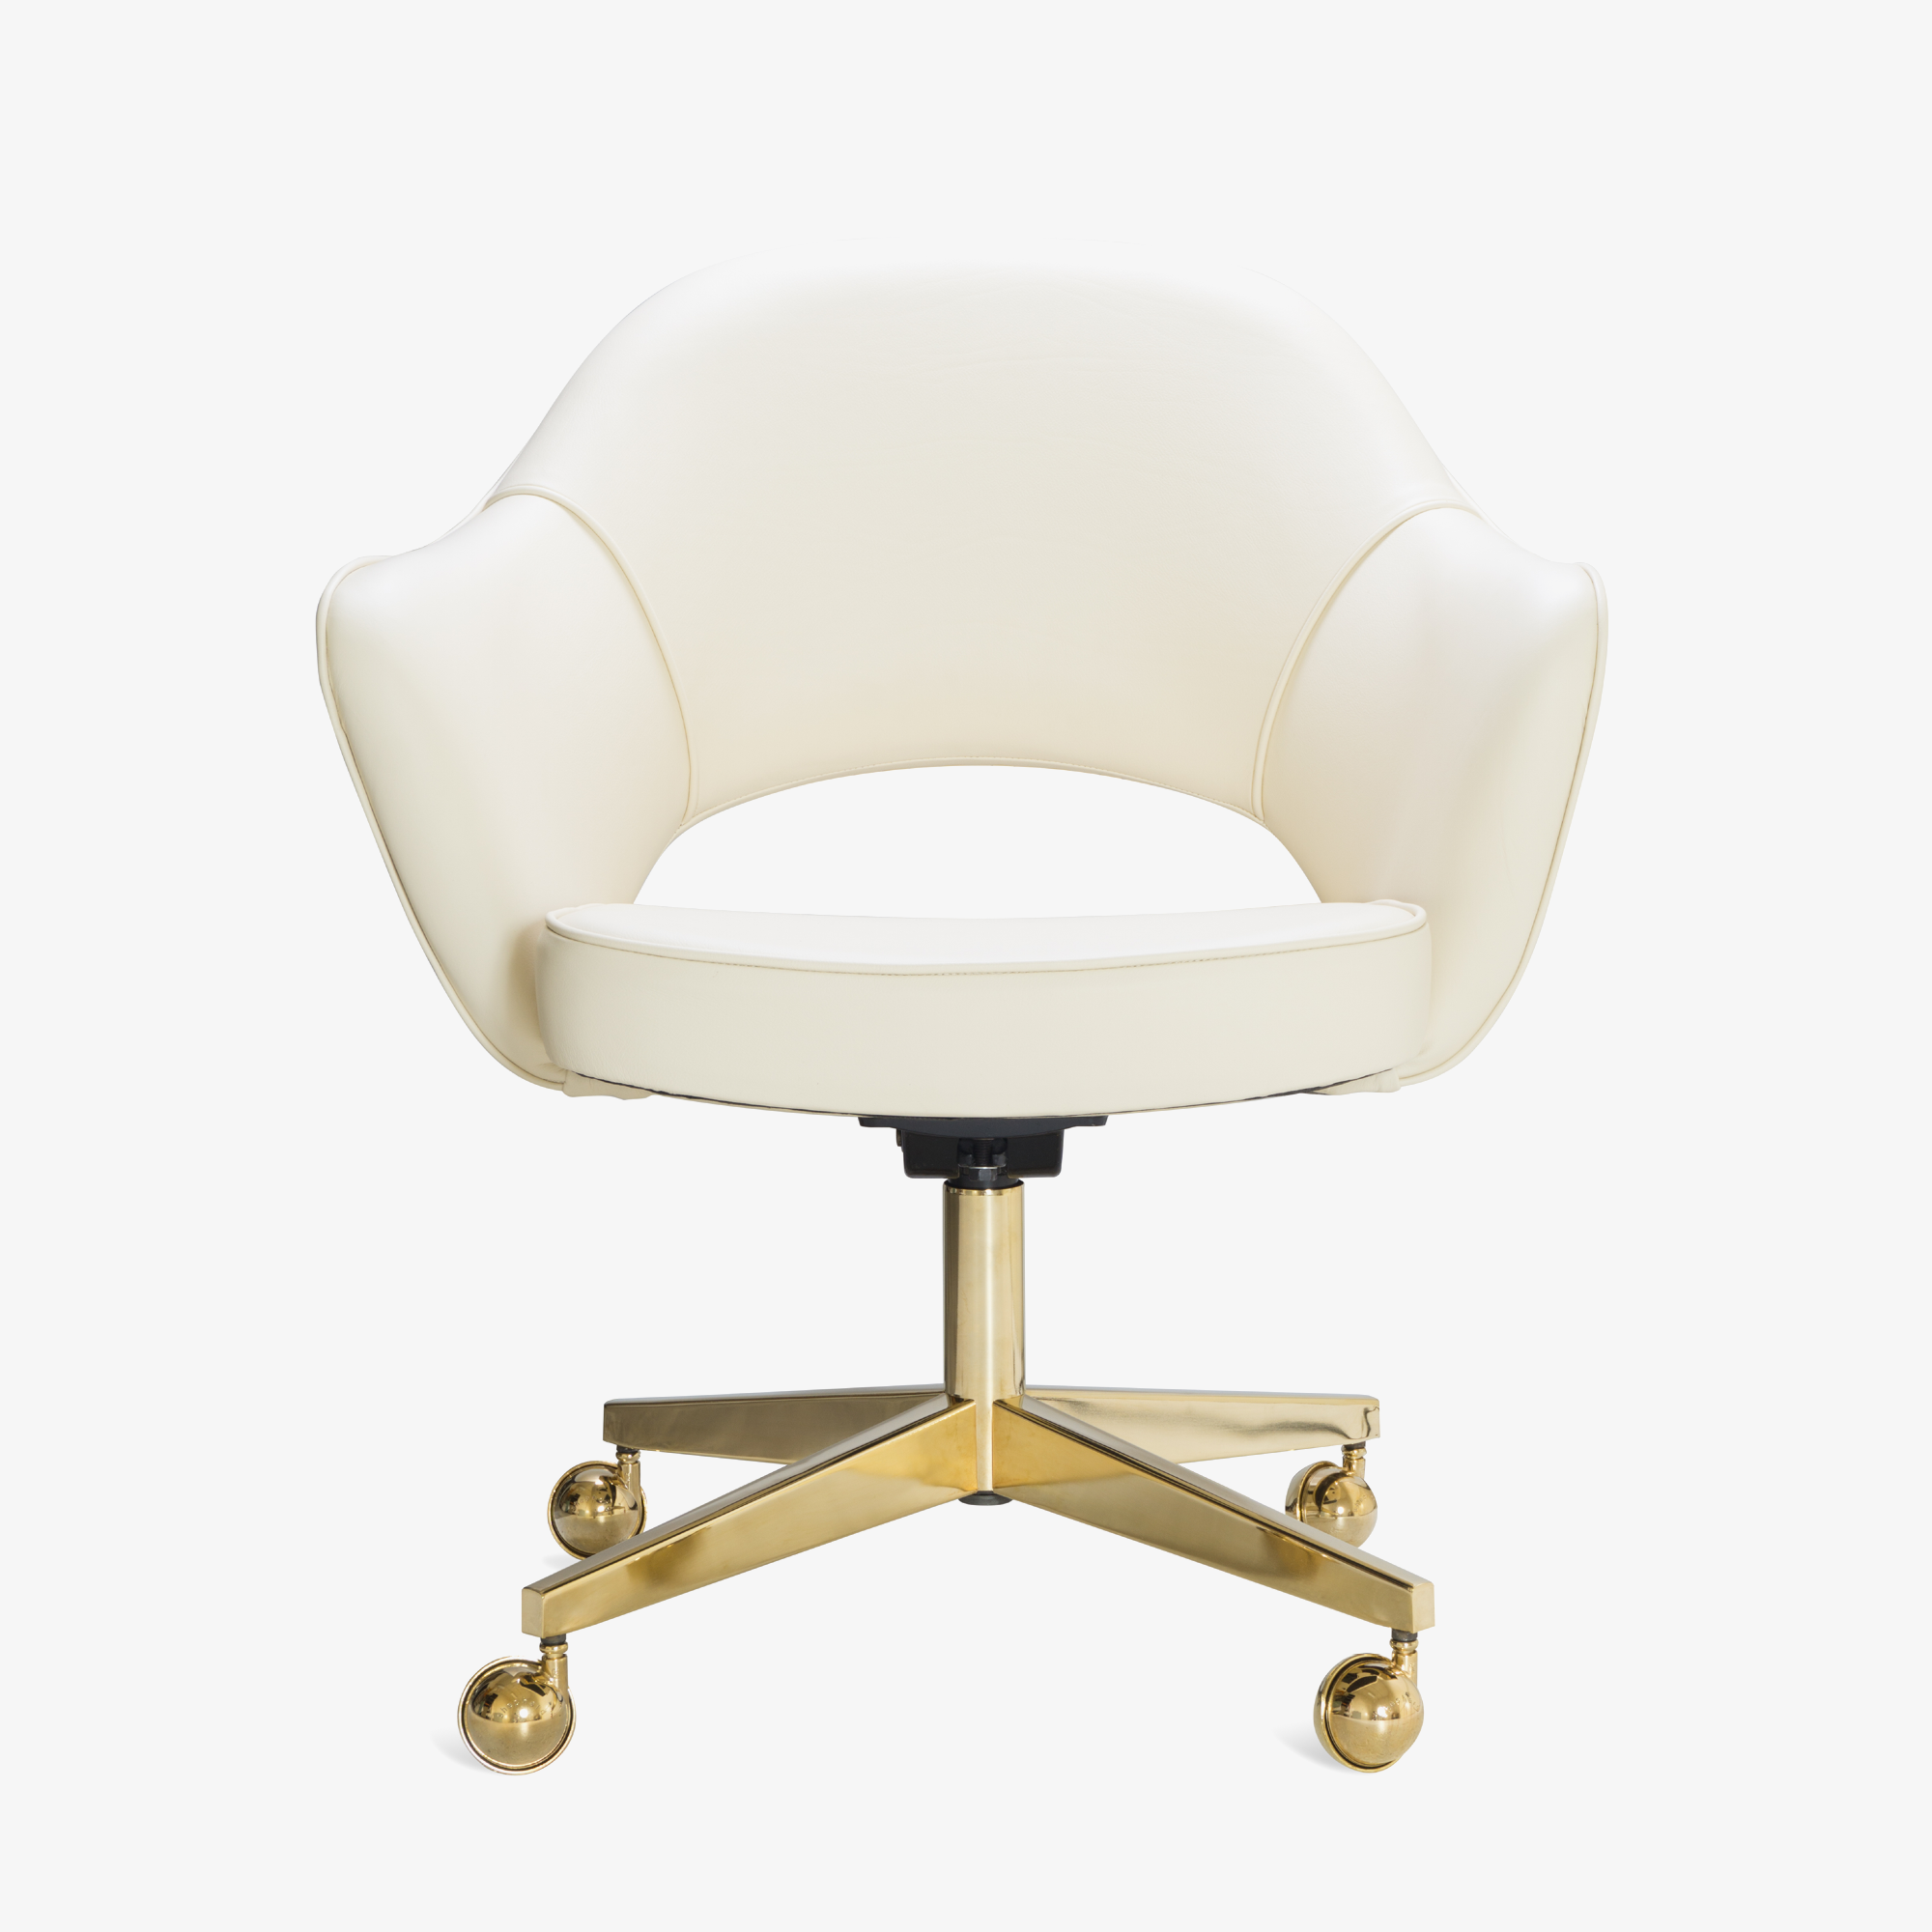 Saarinen Executive Arm Chair in Creme Leather, Swivel Base, 24k Gold Edition2.png